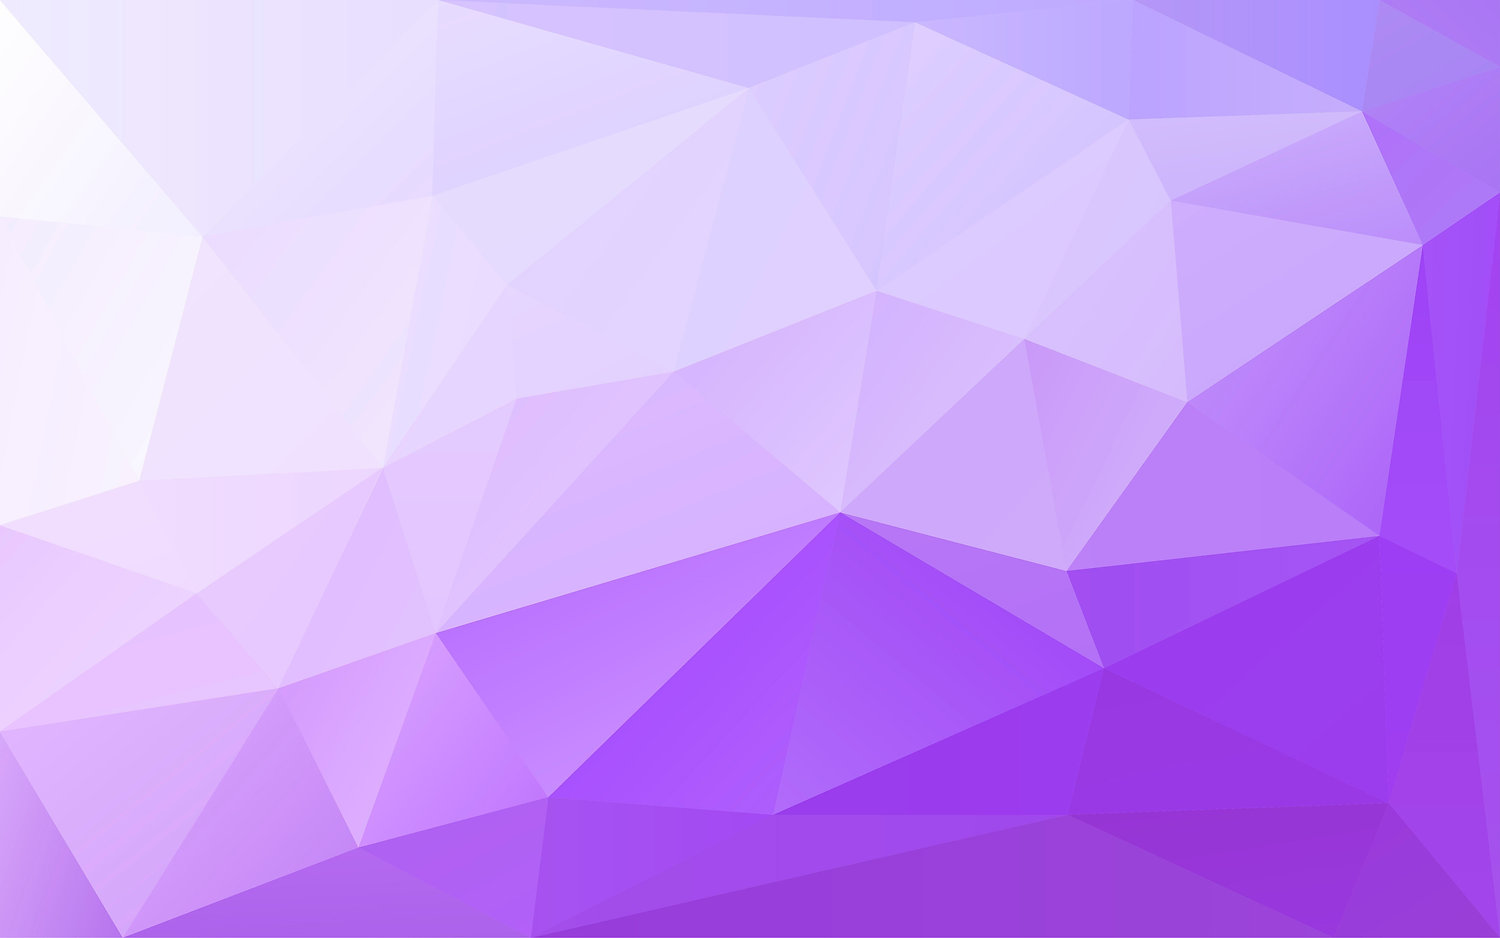 vector-background-wallpaper-with-polygons-in-gradient-colors.jpg